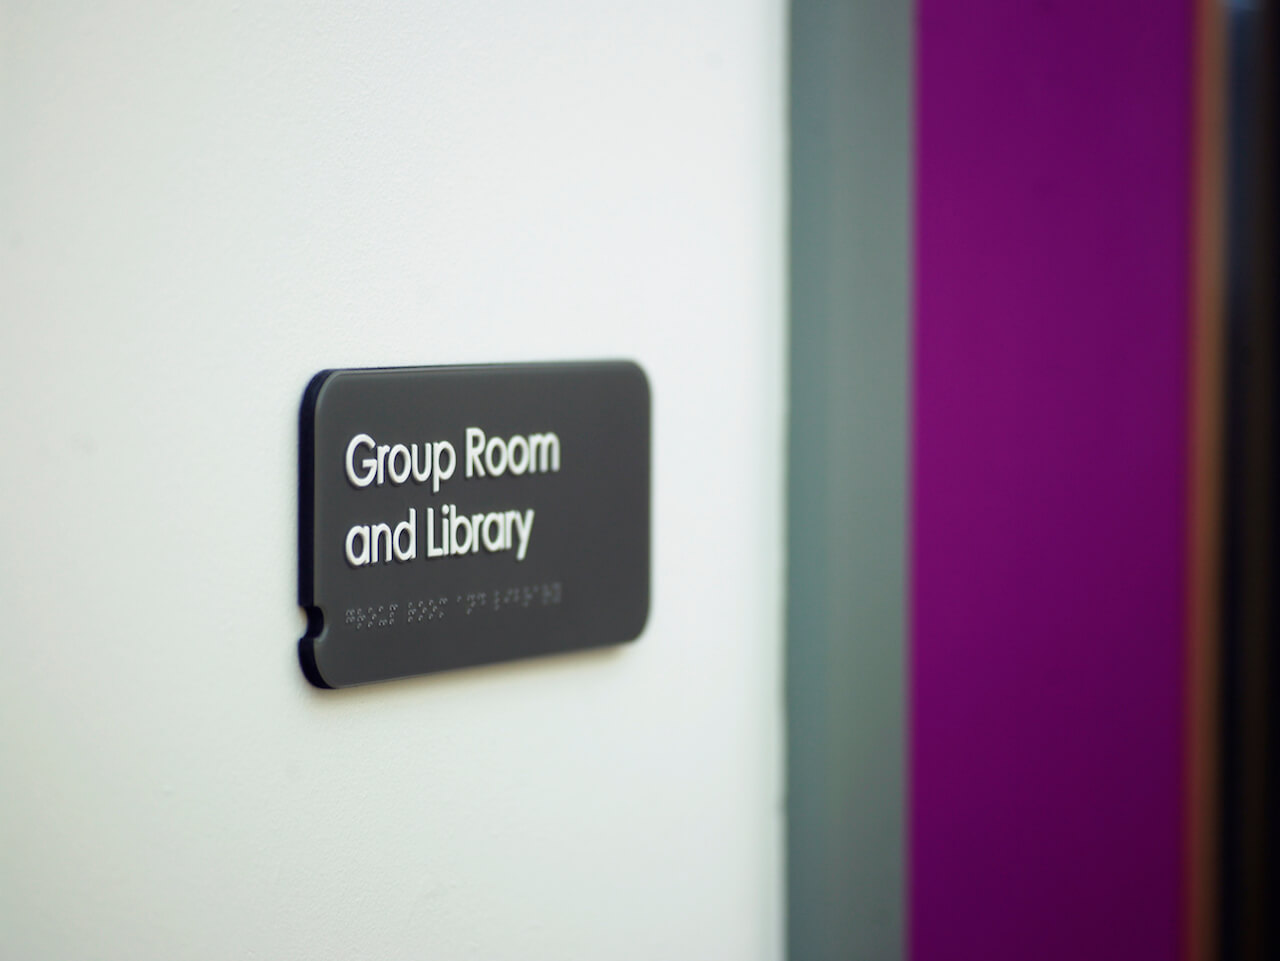 Inclusive and accessible door signage with Braille